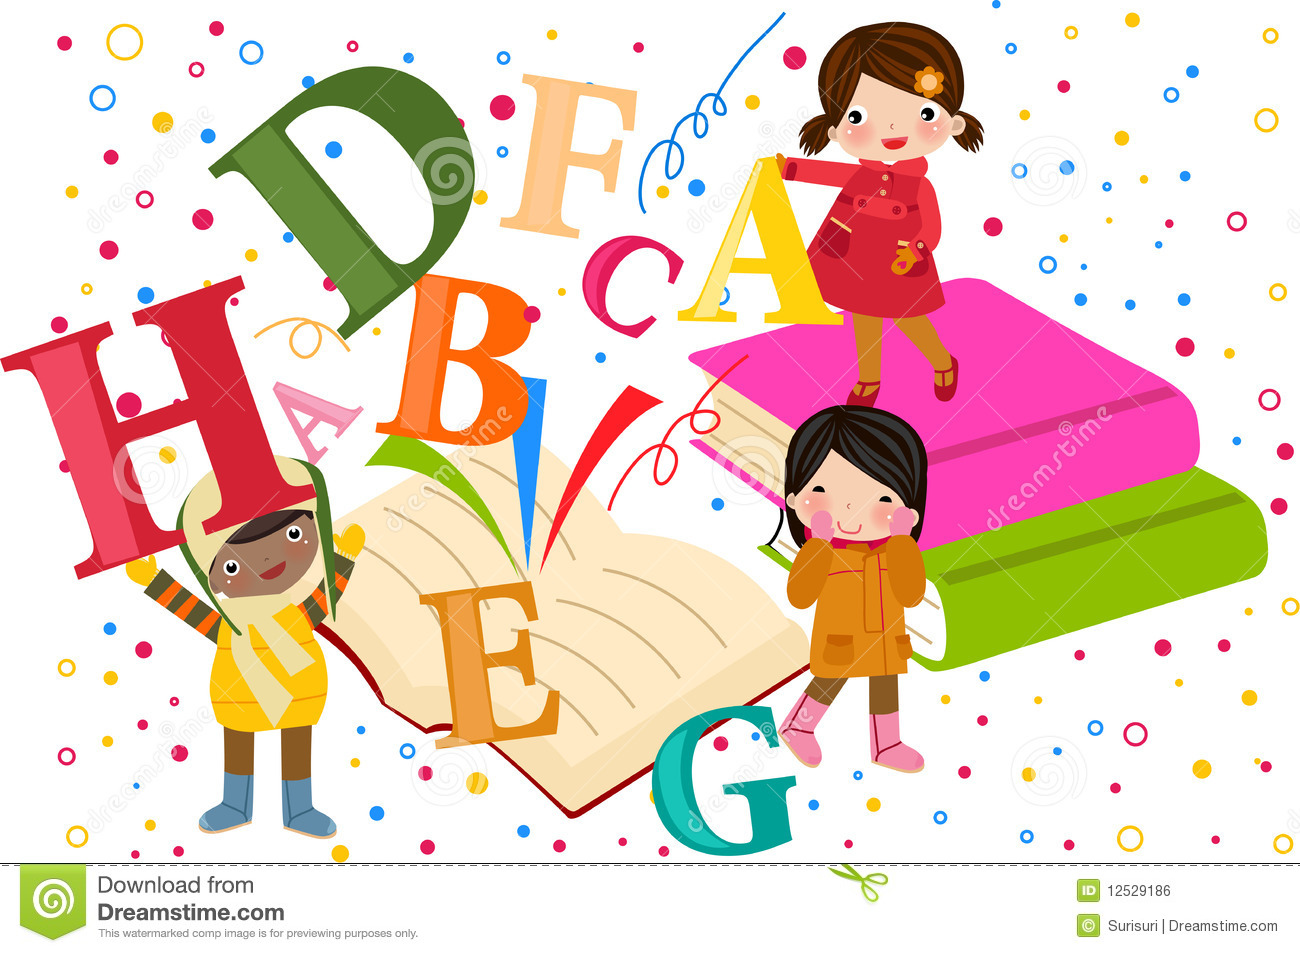 Alphabet kids clipart clip freeuse library Kids And Alphabet Royalty Free Stock Photos - Image: 12529198 clip freeuse library